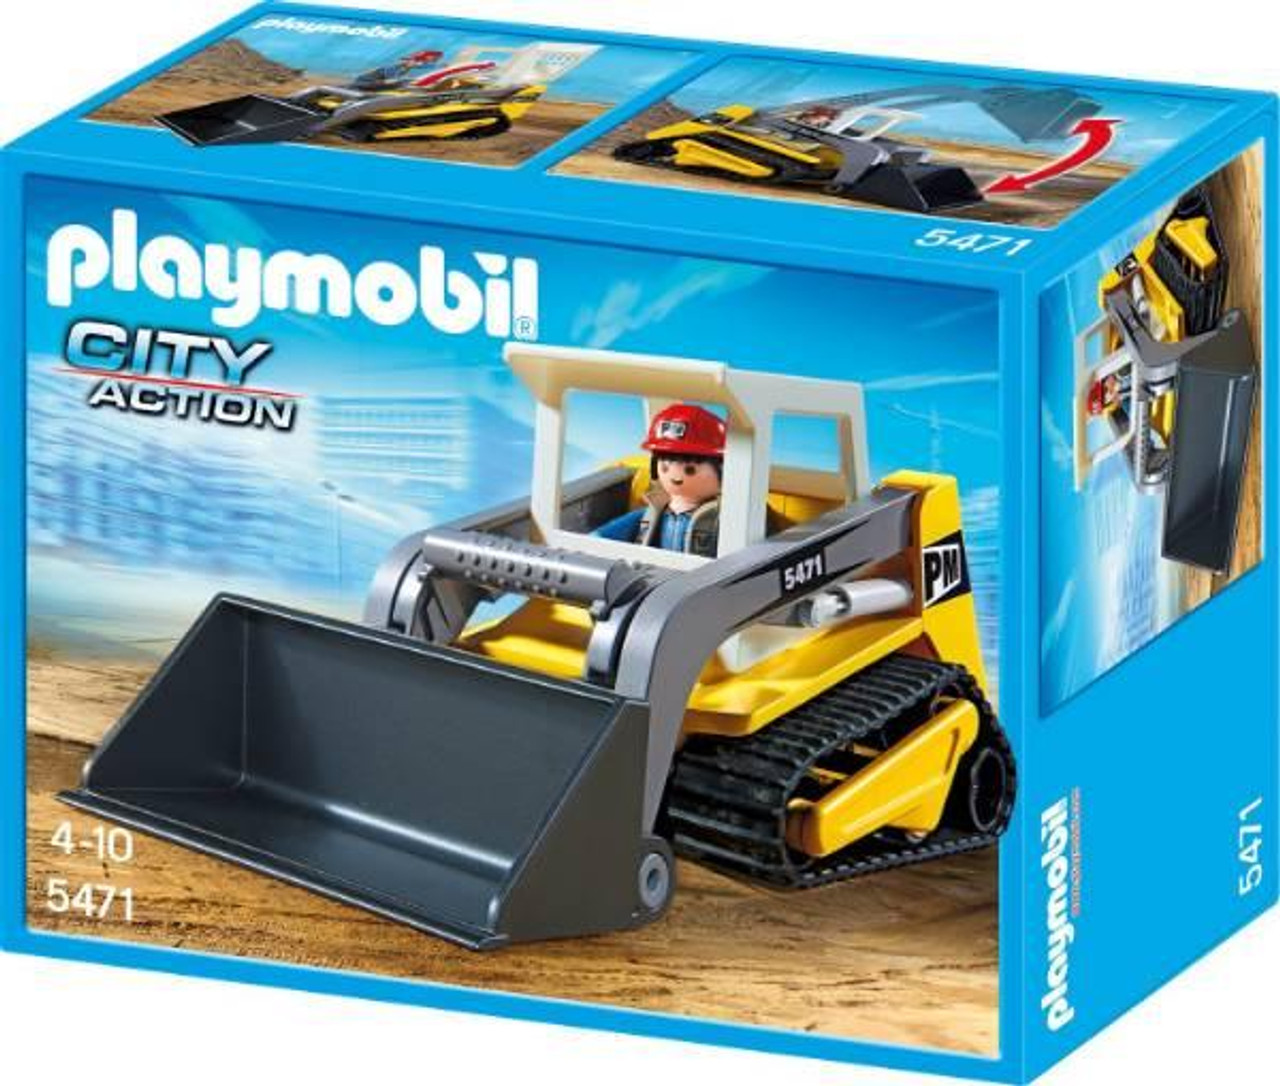 Playmobil City Action Compact Excavator Set #5471